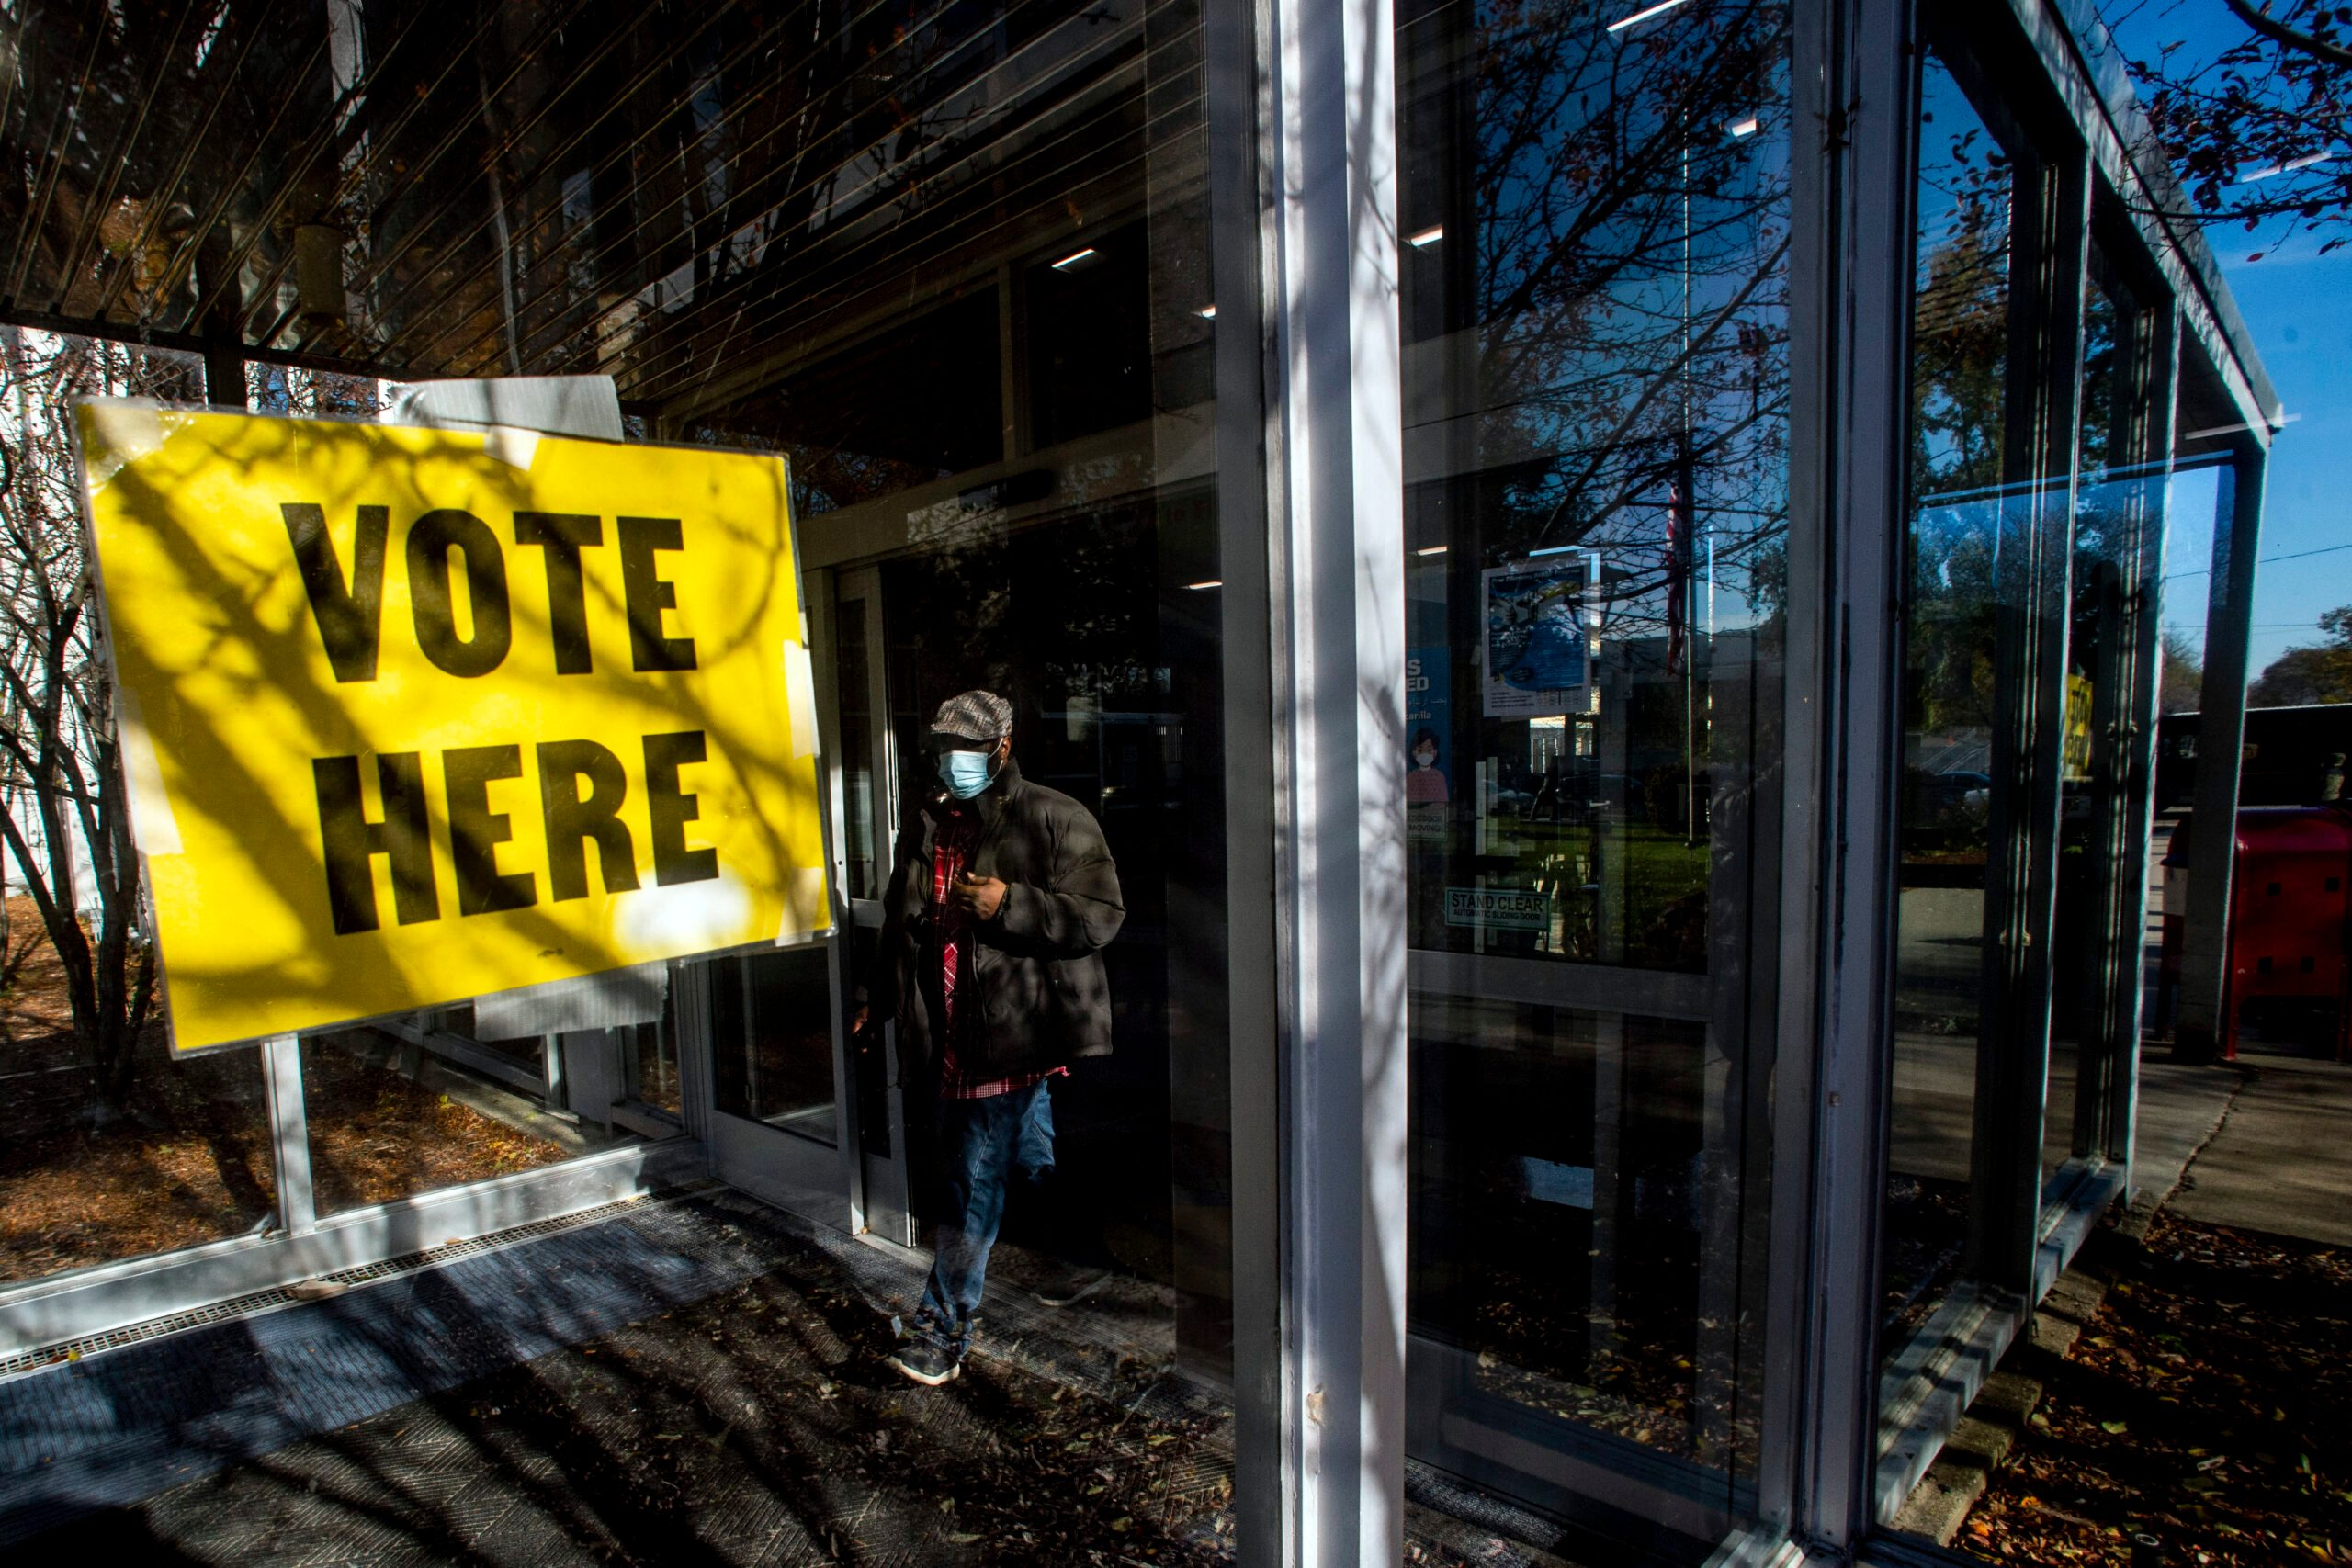 Michigan Republicans Pass Bills to Add Voter ID Requirements - snopes